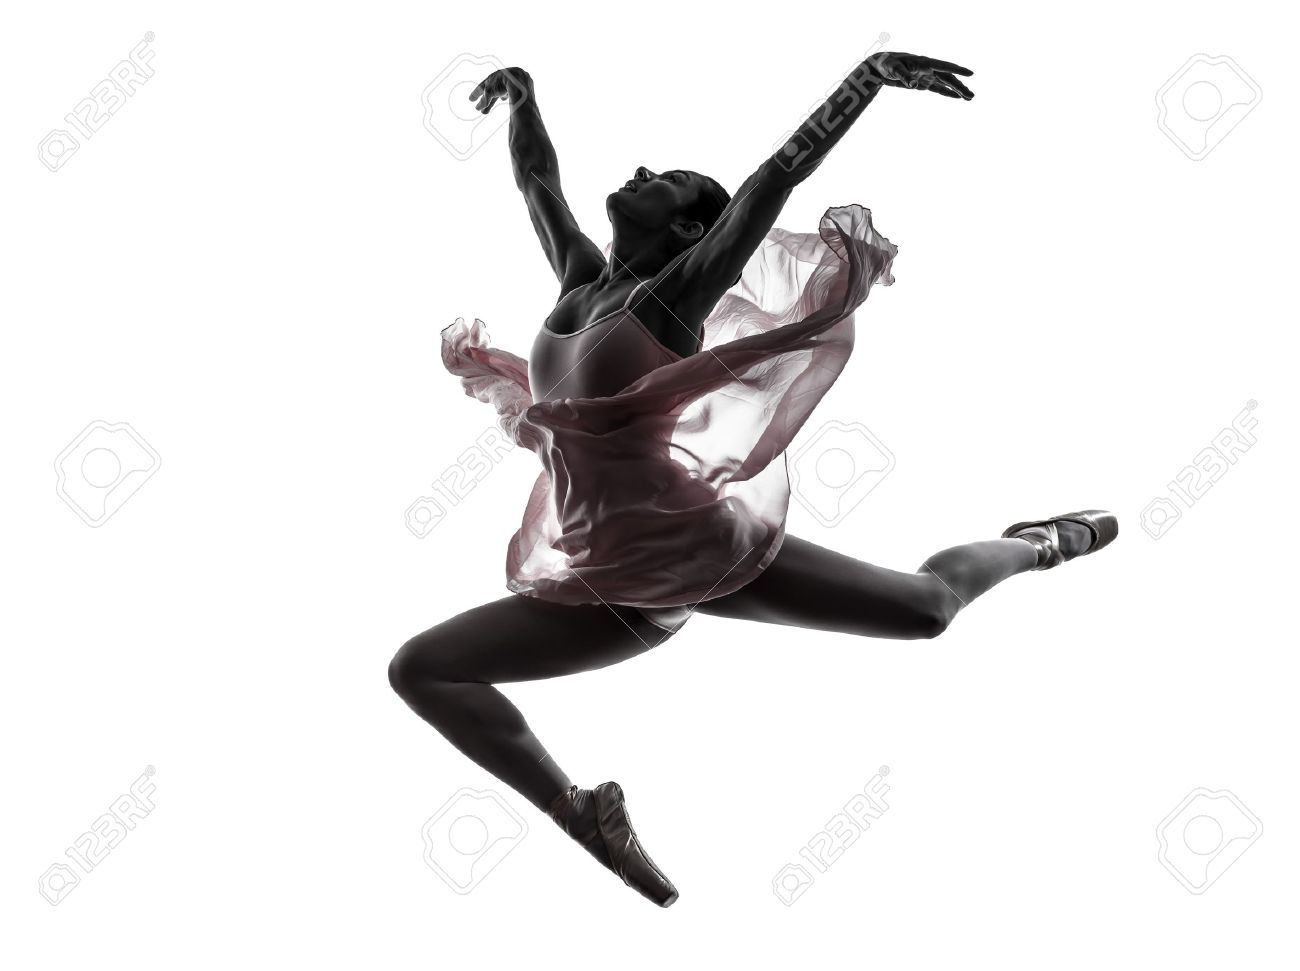 Seamless pattern of ballet dancers royalty free stock photography - Ballet Dancer One Woman Ballerina Ballet Dancer Dancing In Silhouette On White Background